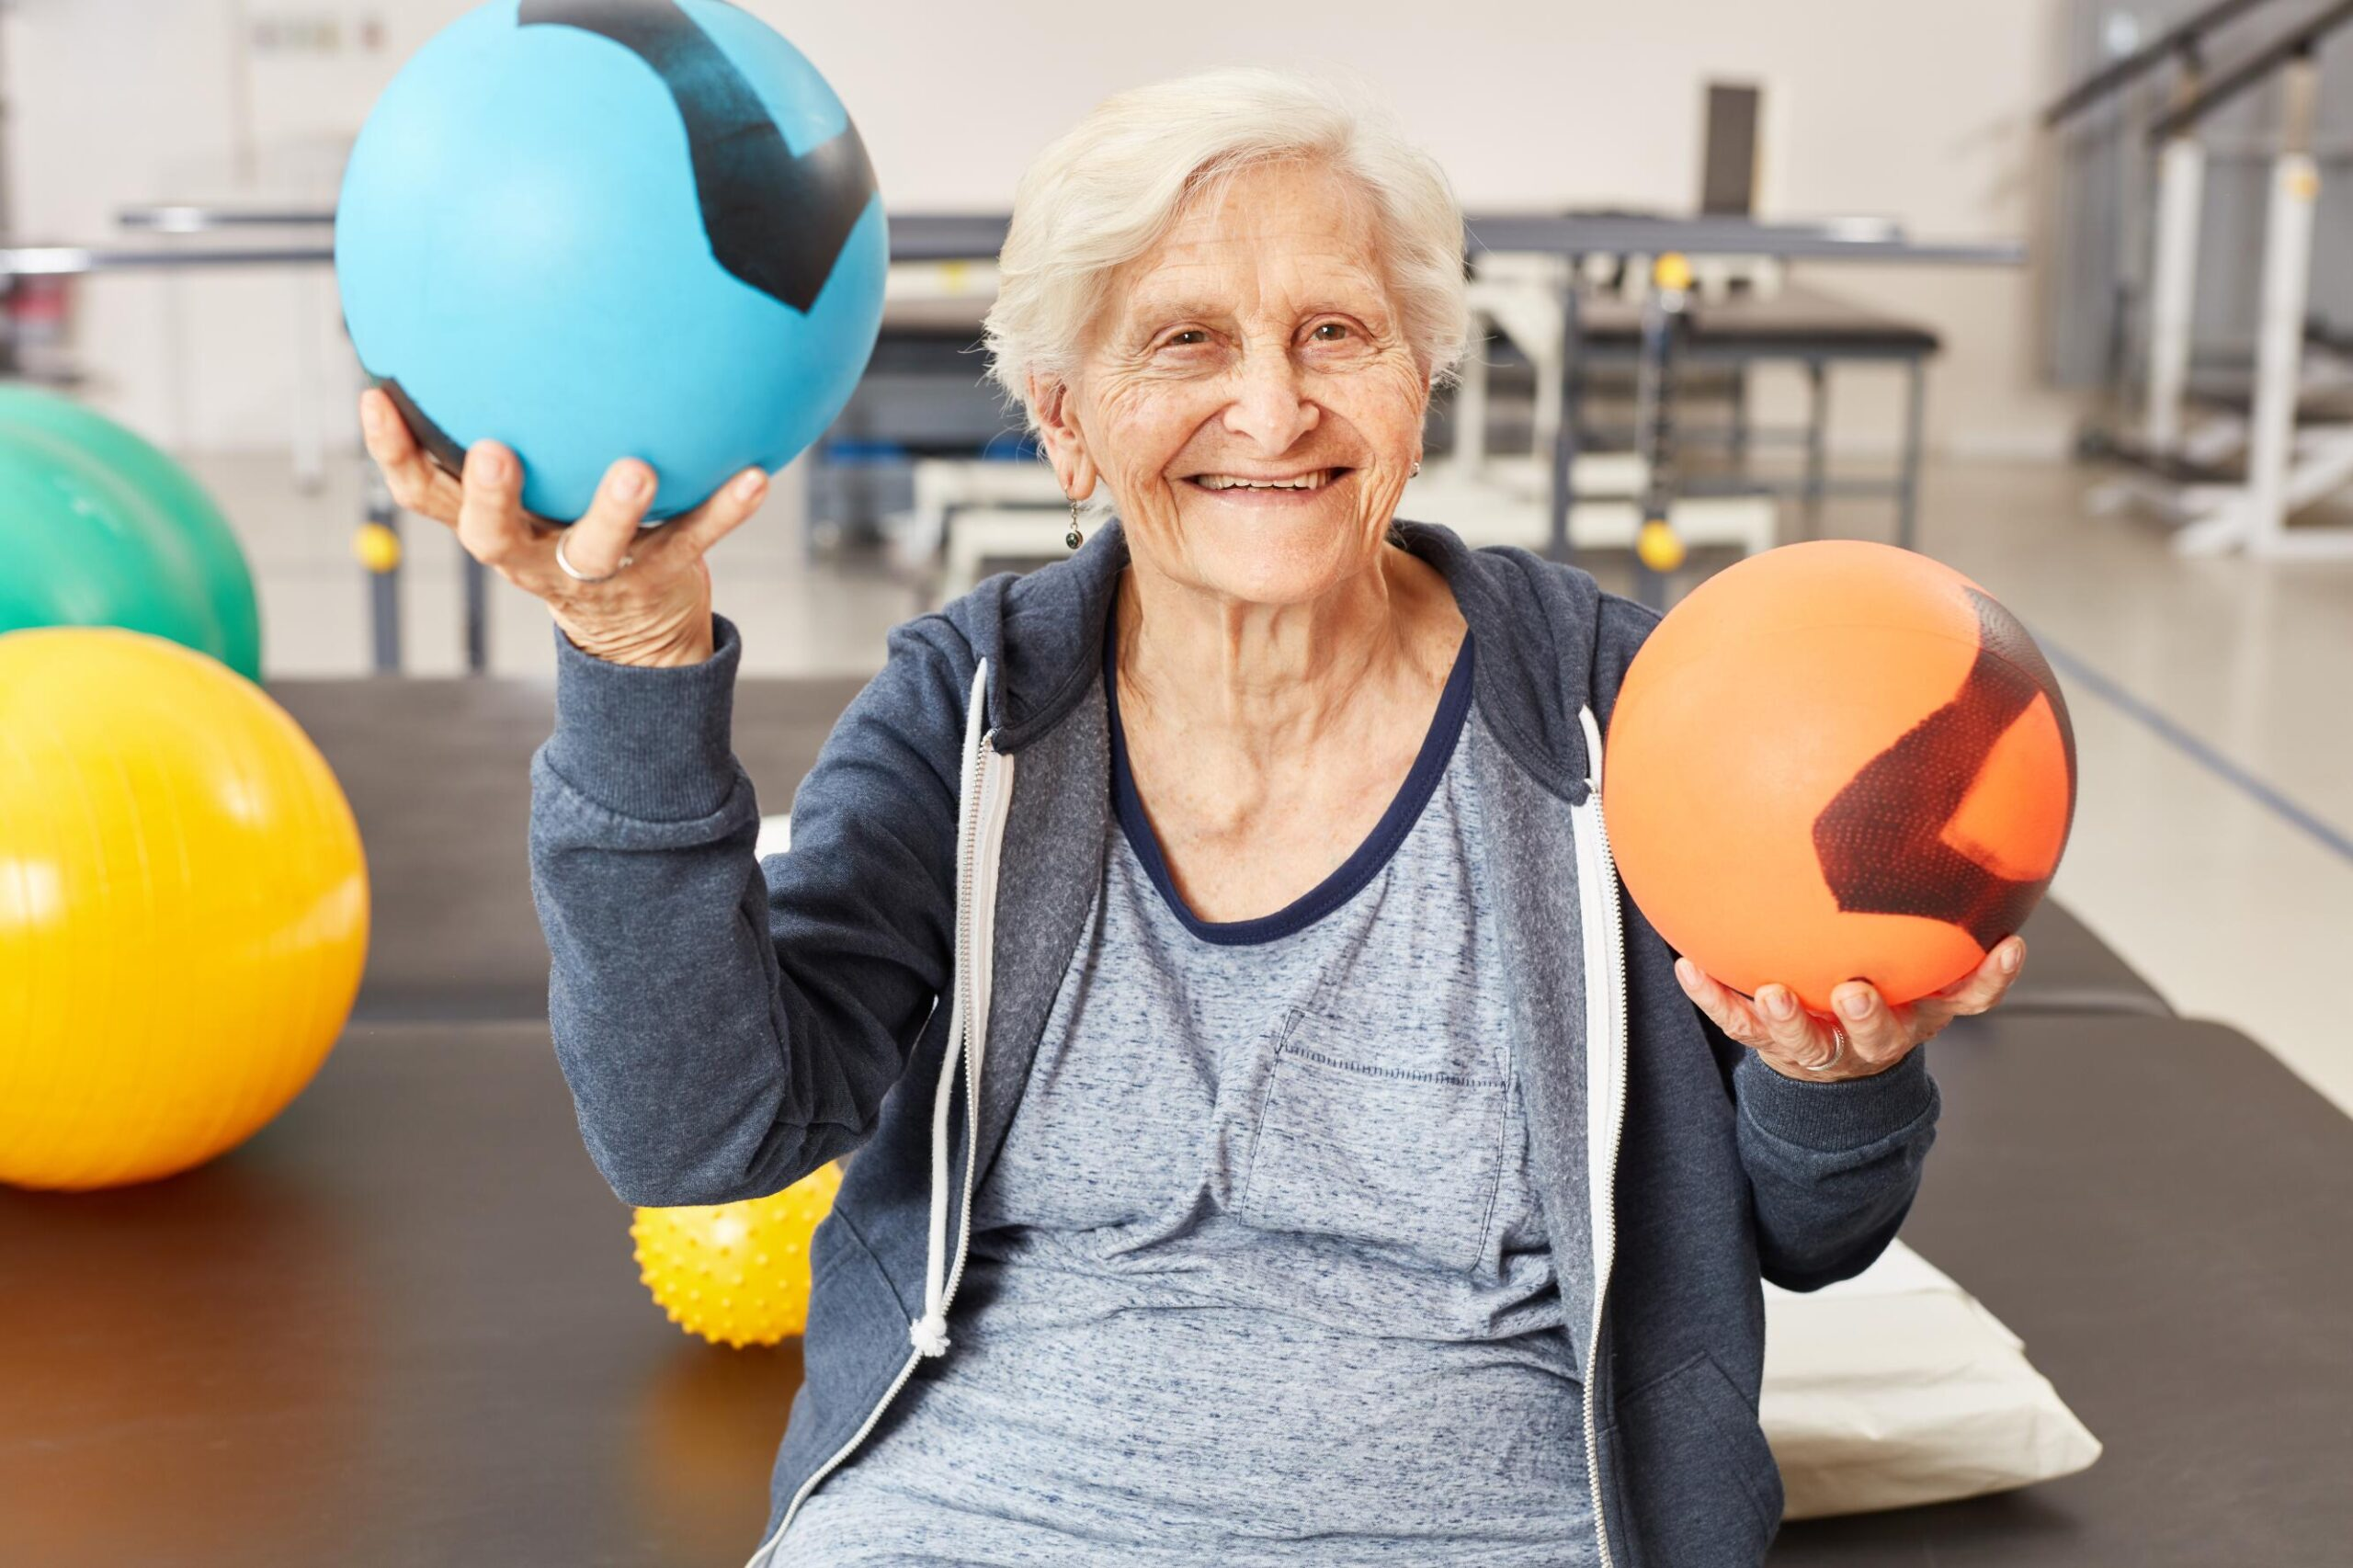 Senior woman balances balls as exercise for coordination in occupational therapy